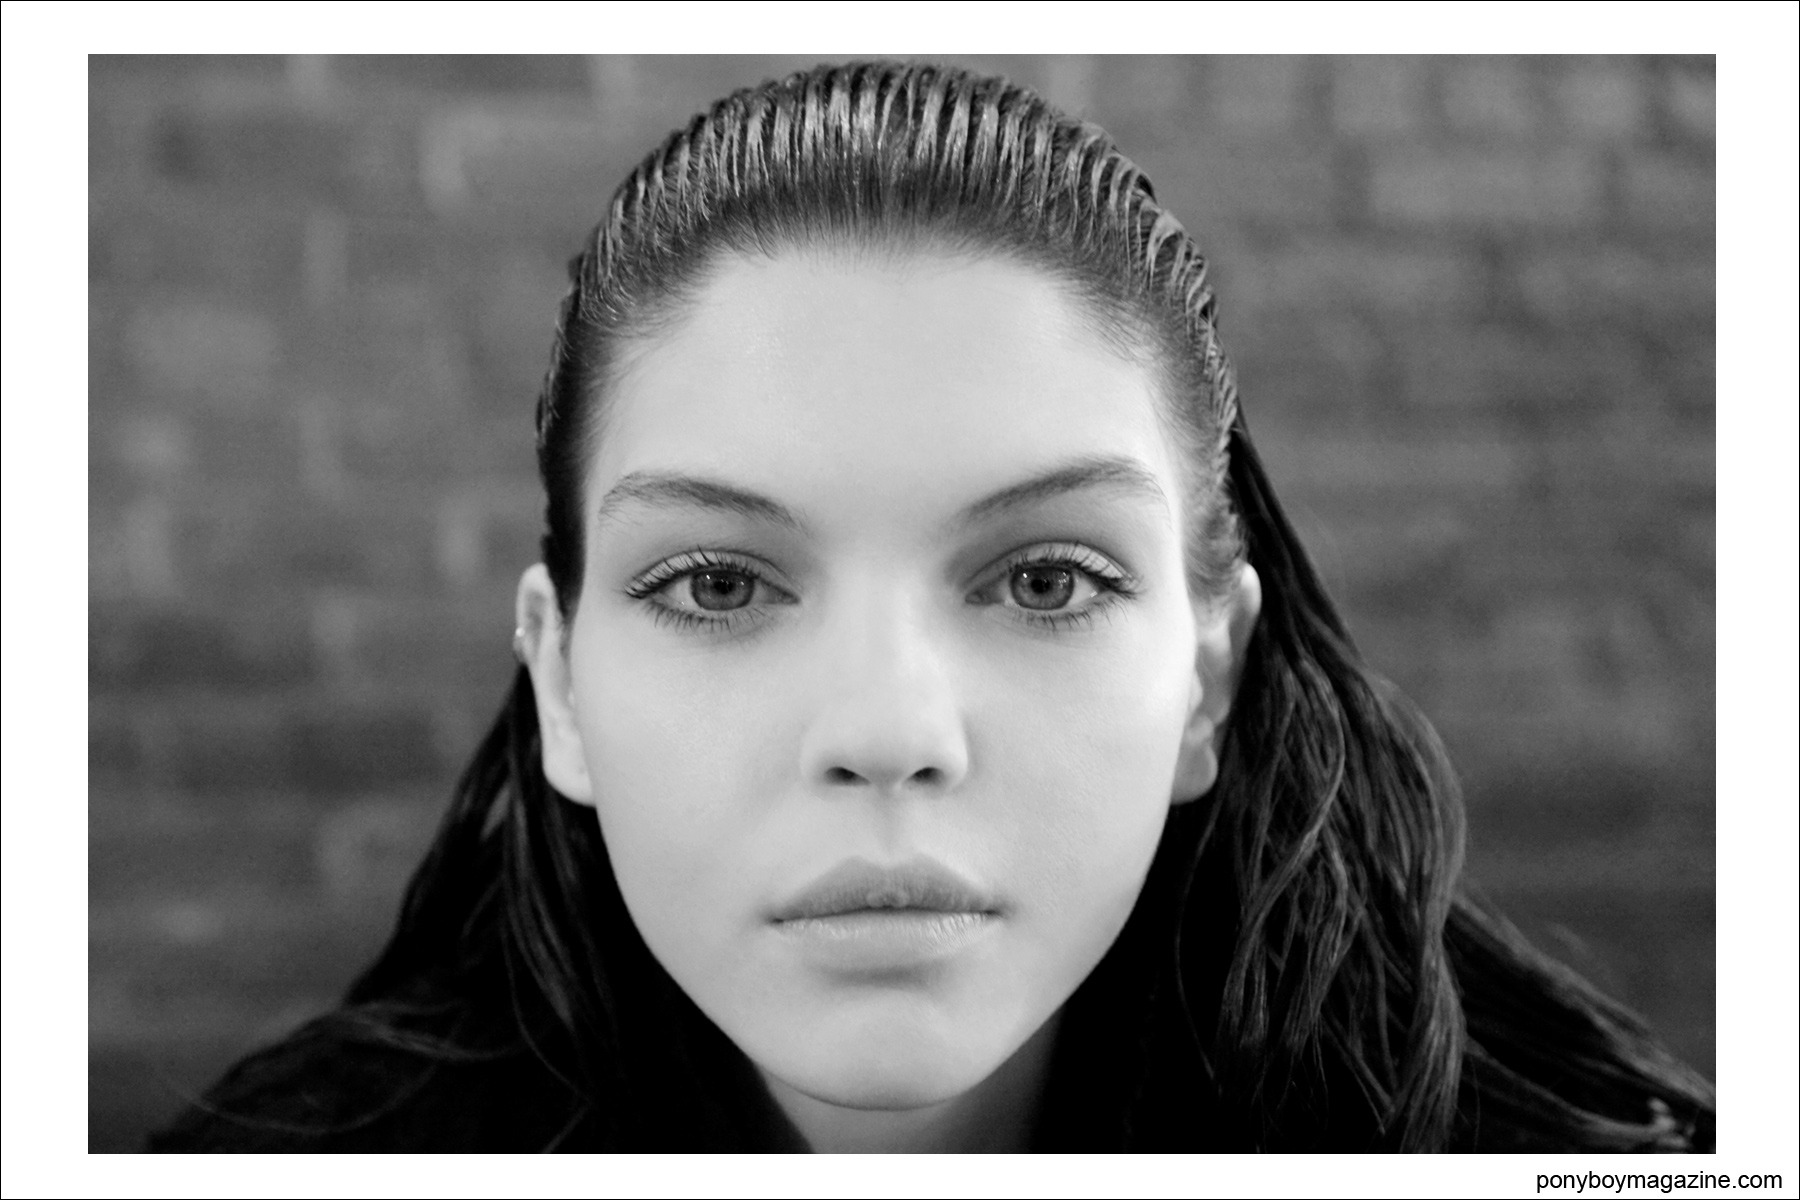 A b&w beauty shot of a female model backstage at the Jeremy Scott A/W 2014 fashion show. Photographed by Alexander Thompson for Ponyboy Magazine.